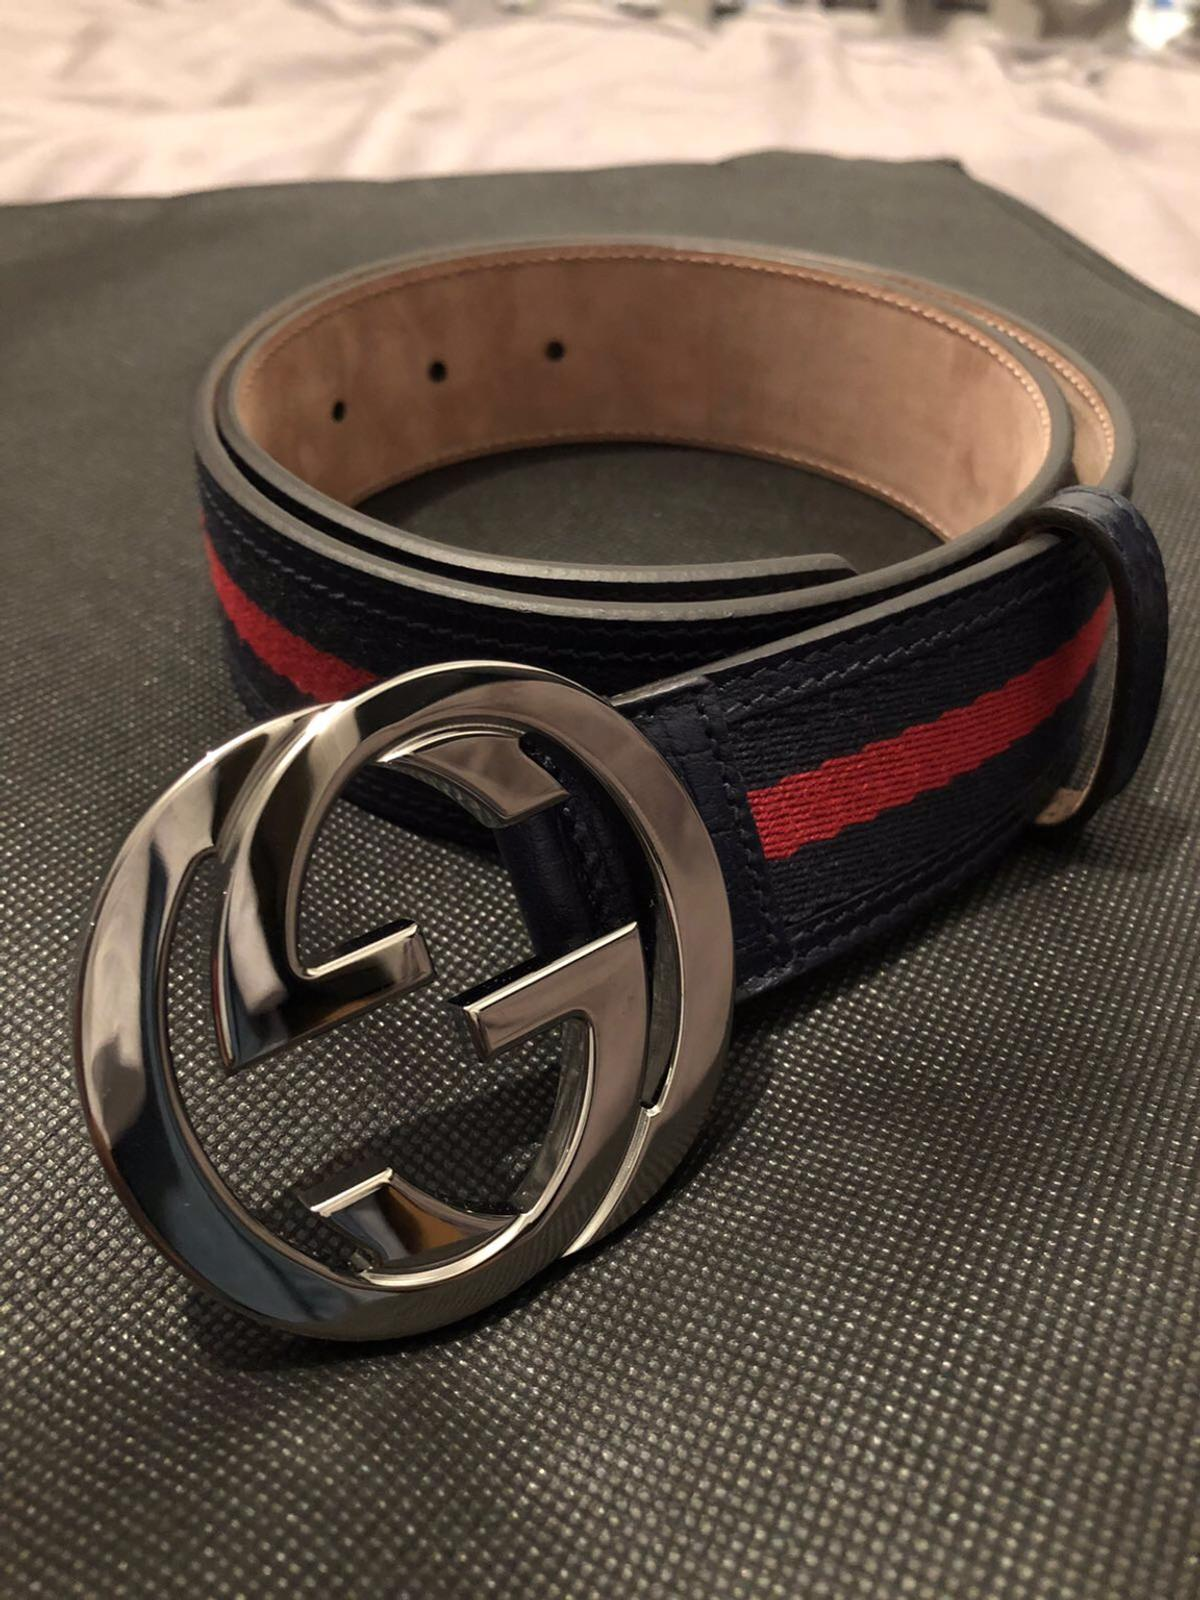 319a04a29 Gucci Belt Men's in E13 Newham for £175.00 for sale - Shpock